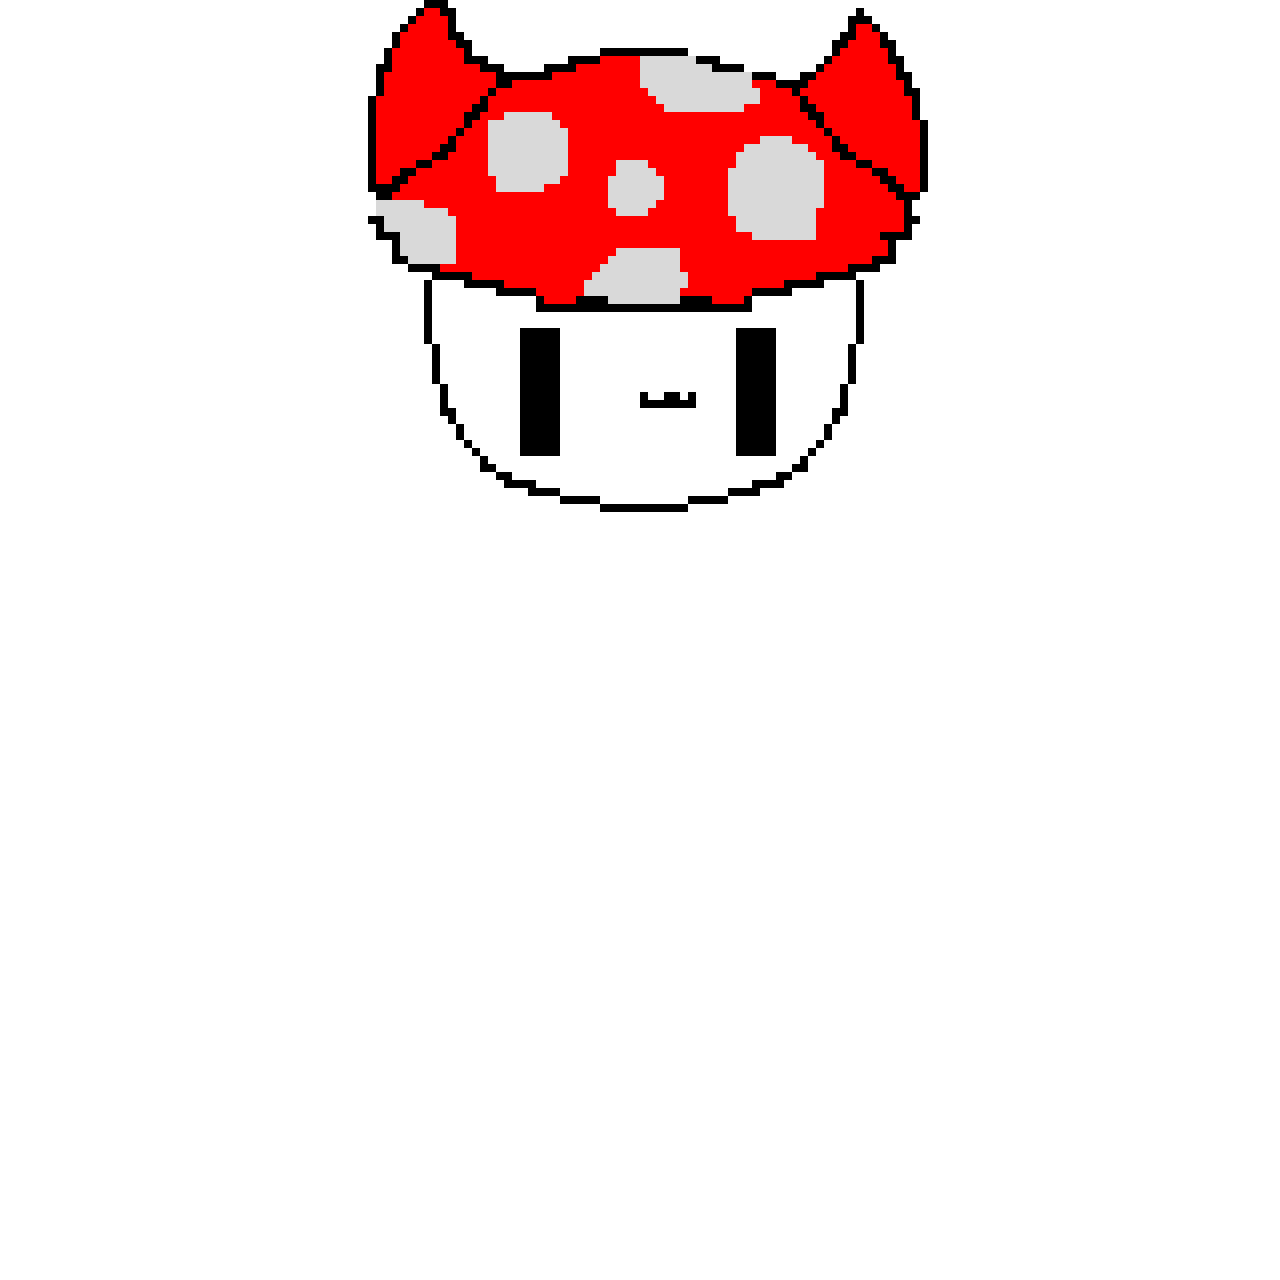 Mushroom Cat, If this gets 5 Likes ill Make Another Plant Cat!